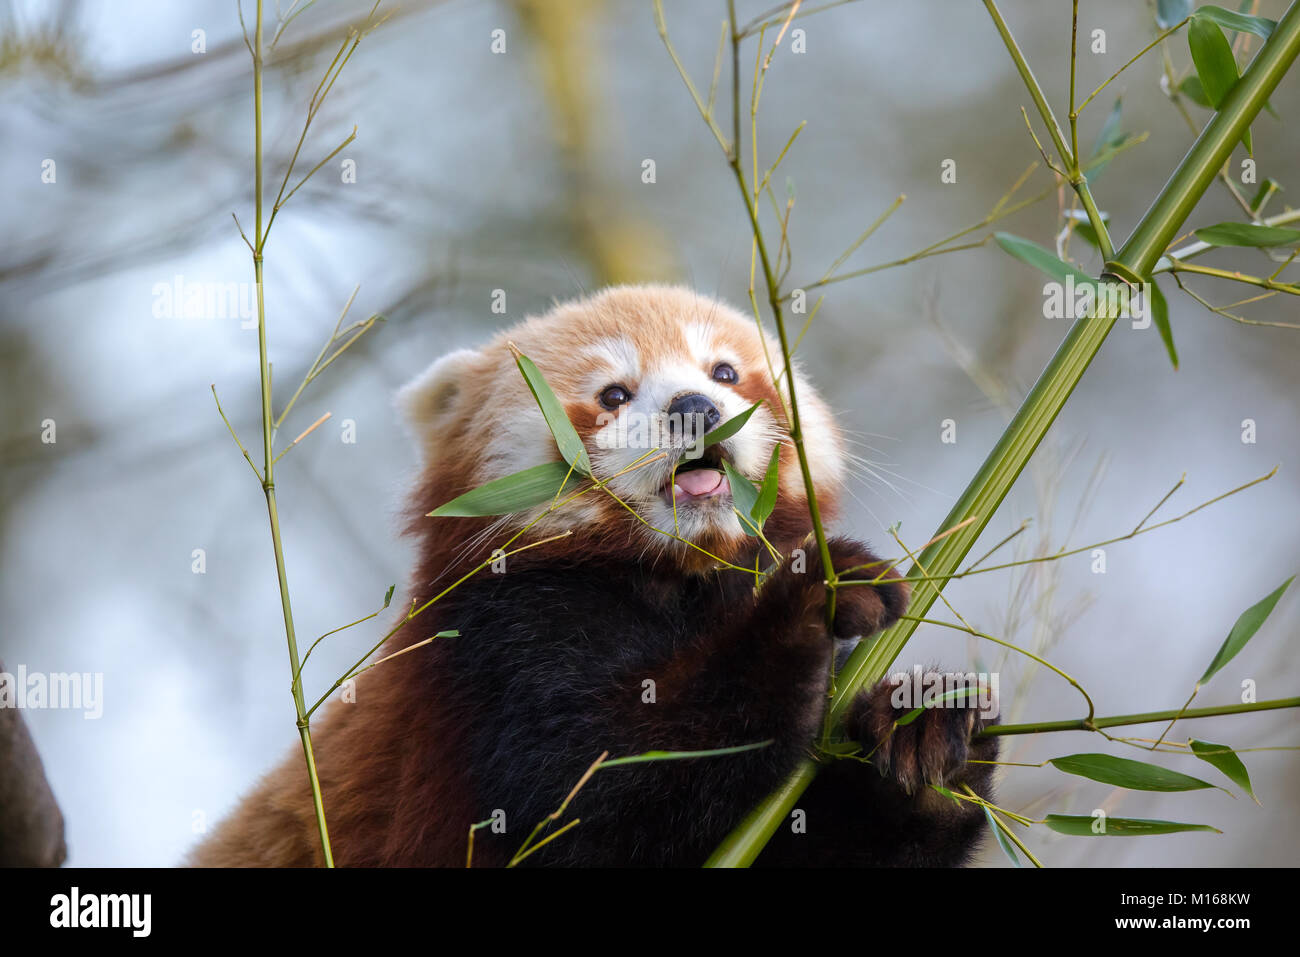 Detailed close up of super cute young red panda (Ailurus fulgens) perched high in a tree eating leaves. Holding - Stock Image